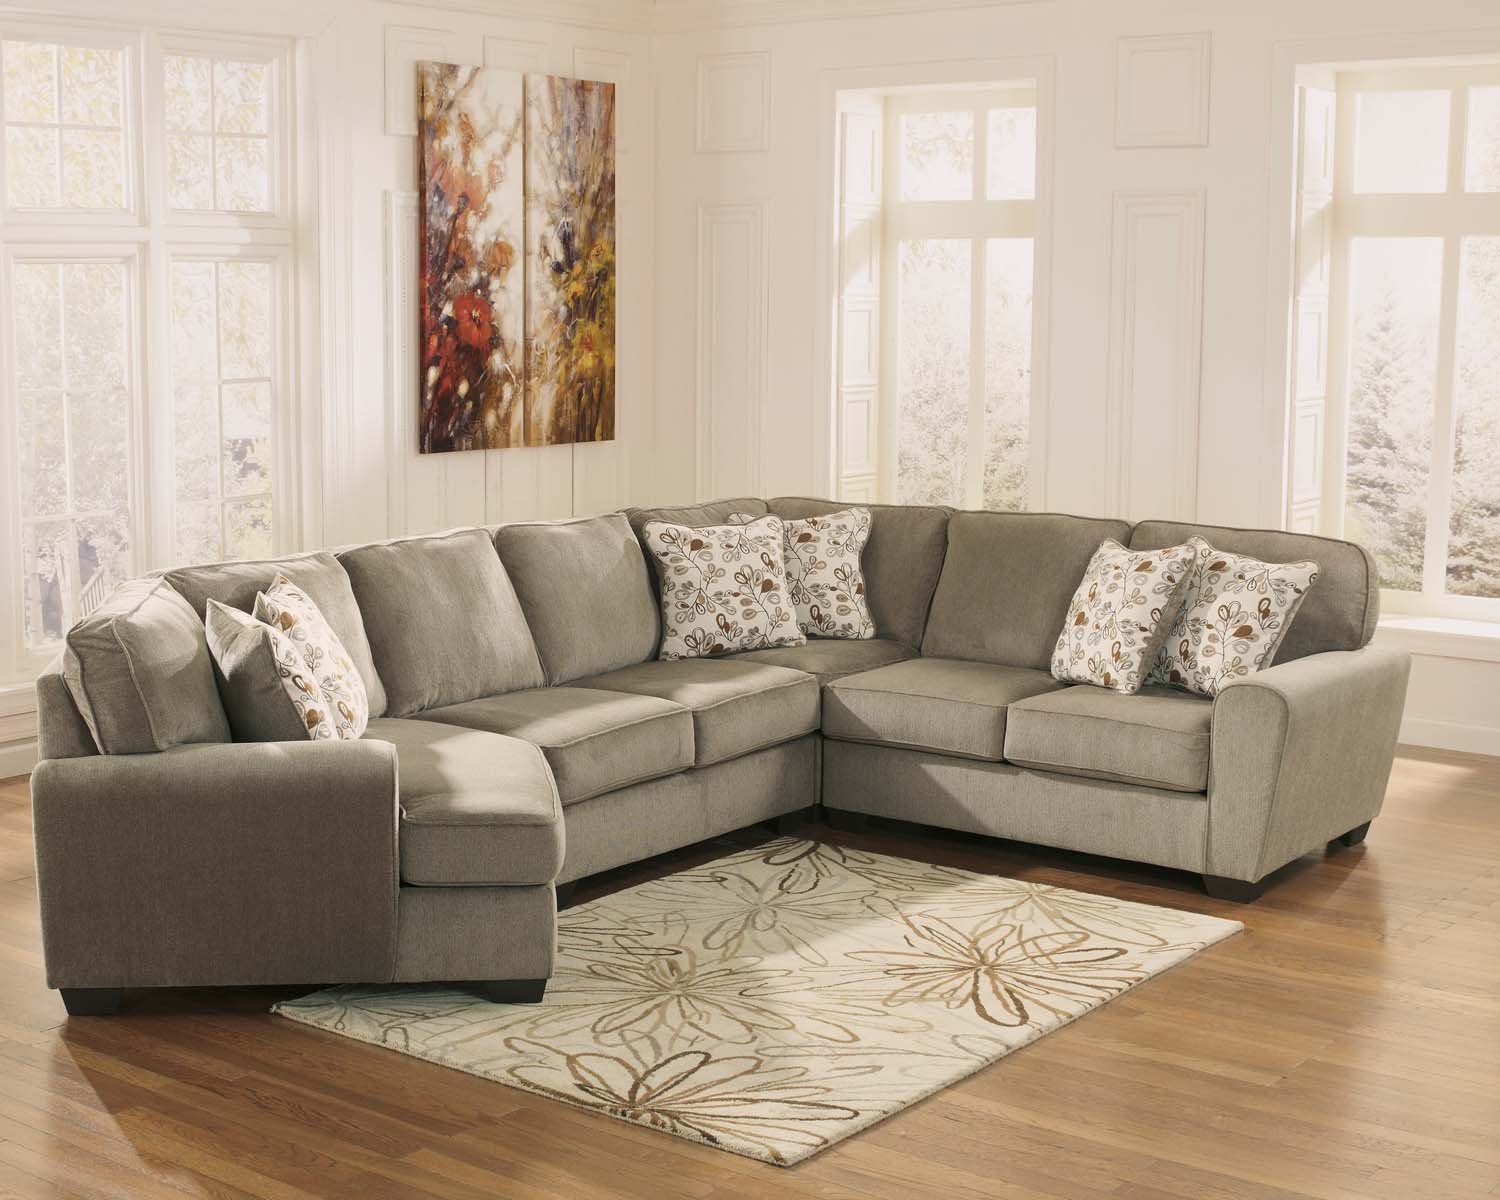 Patola Park - Patina 4 Piece Sectional  sc 1 st  Williamsonu0027s Furniture : patola park sectional - Sectionals, Sofas & Couches